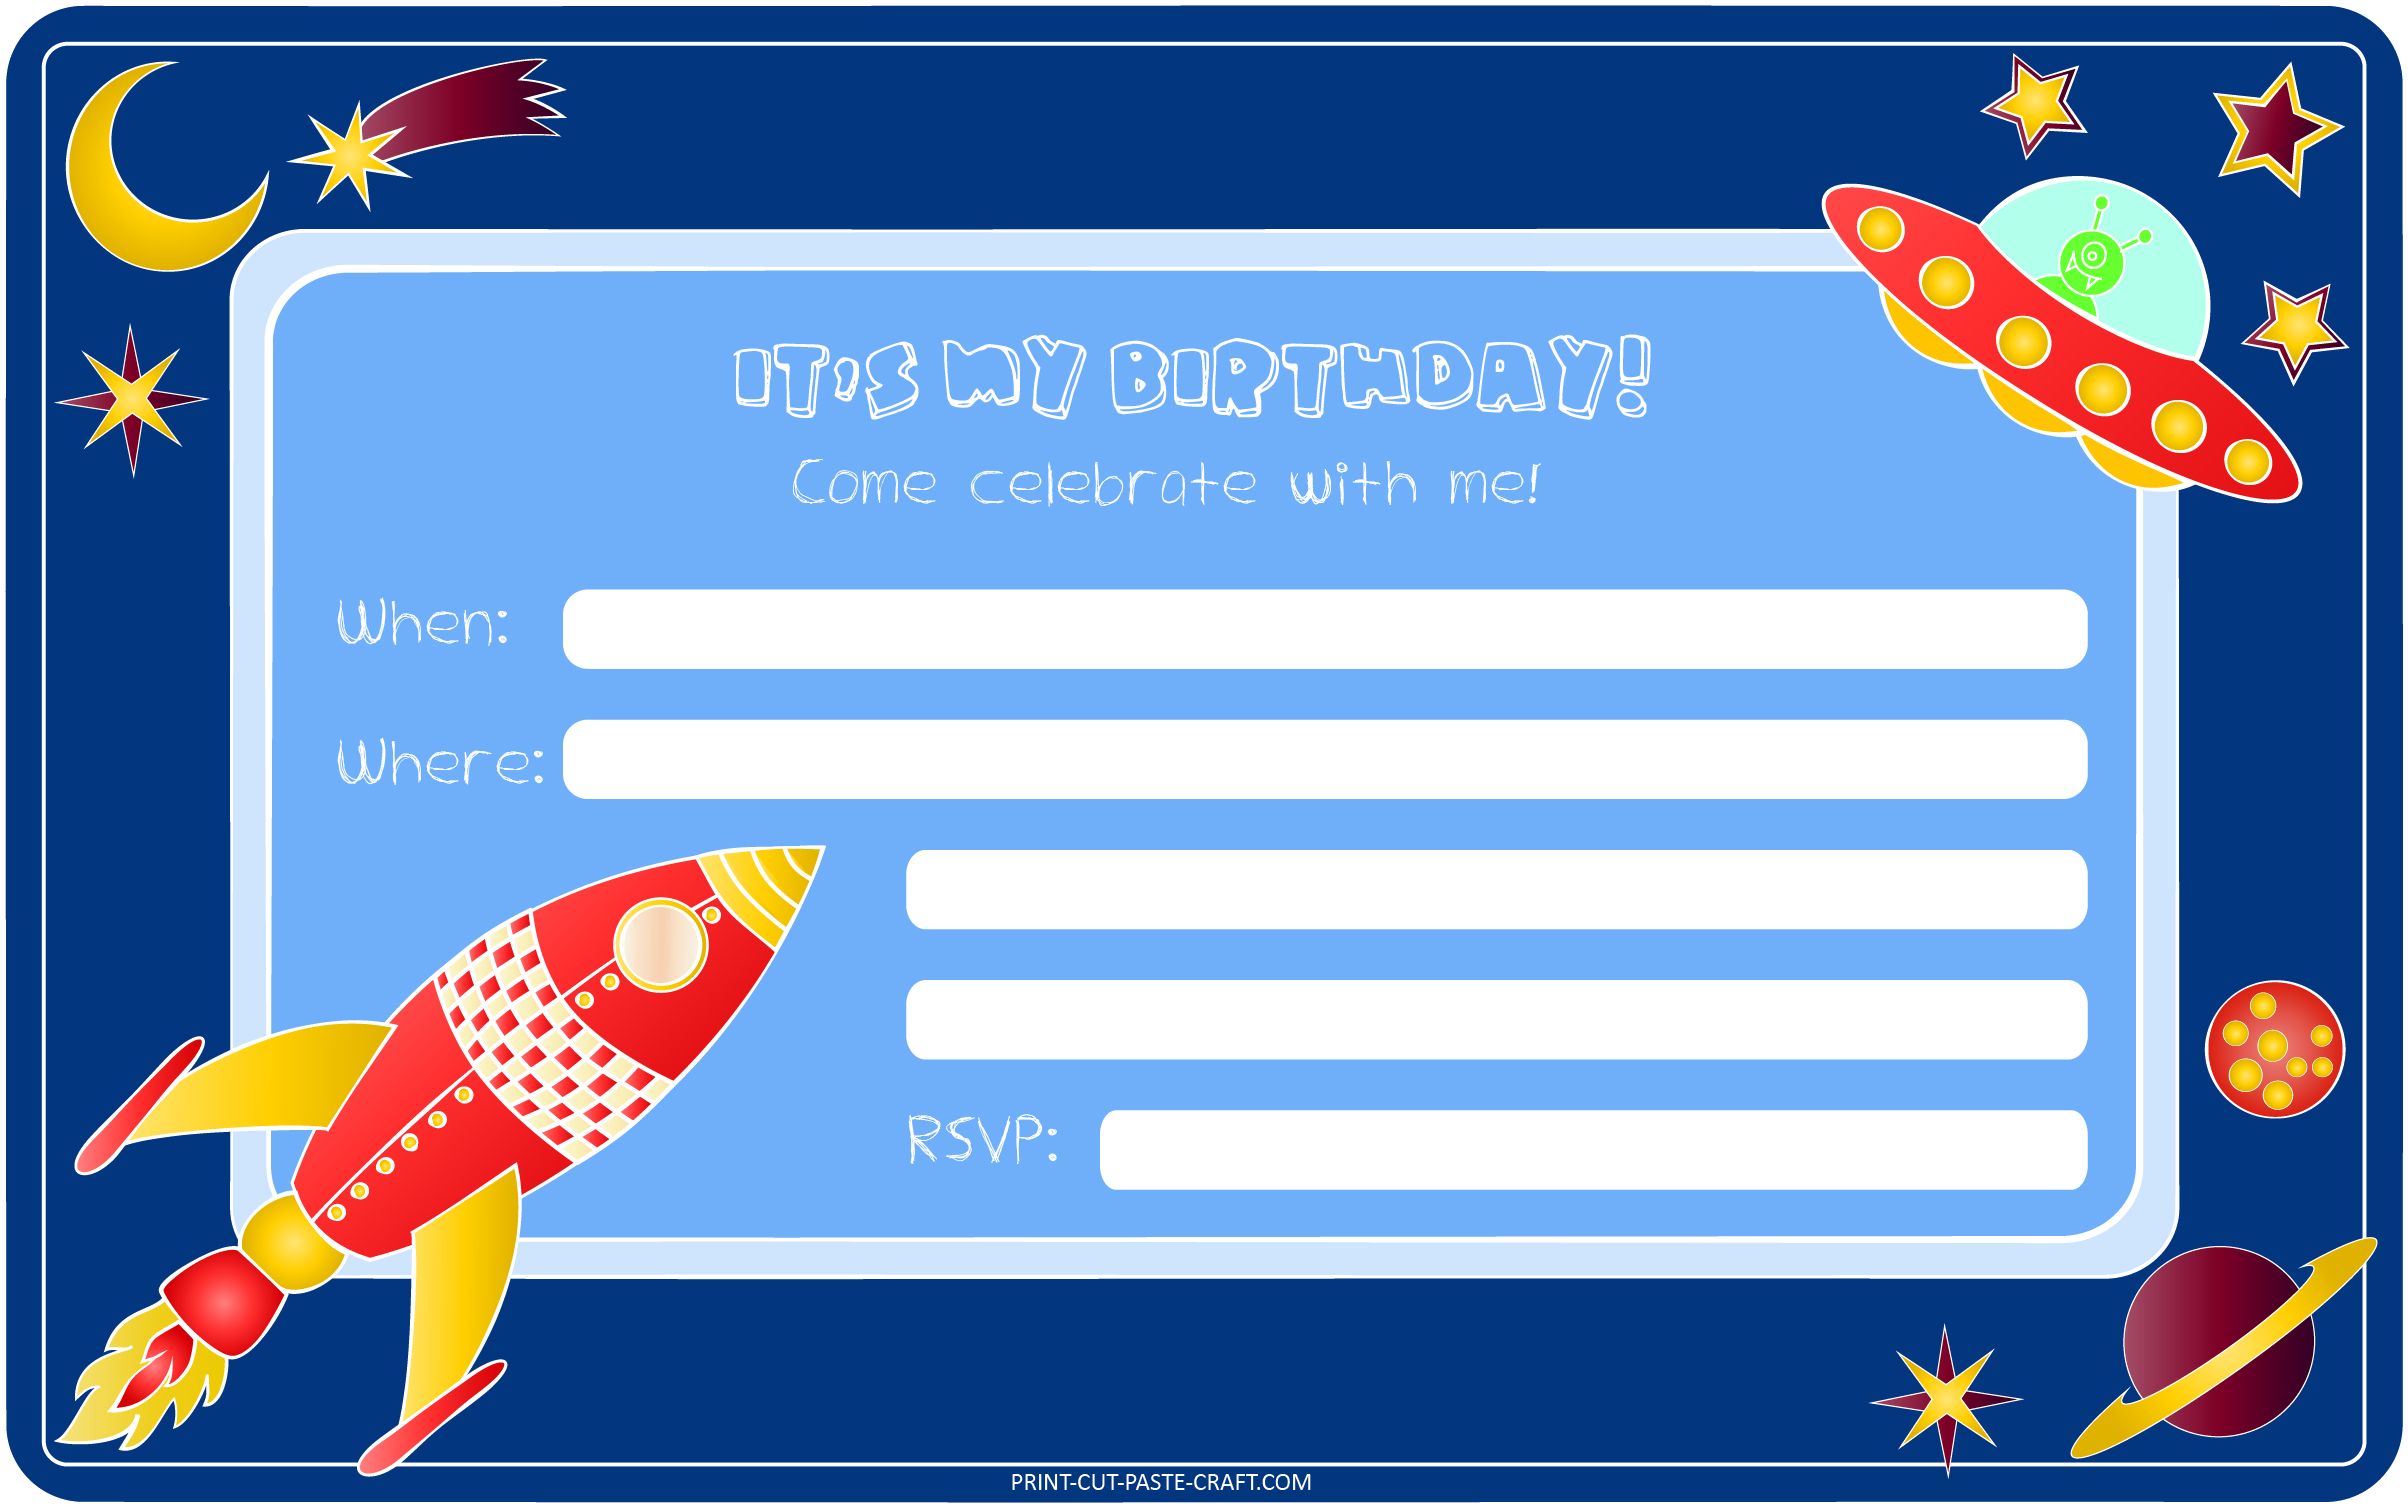 Space Themed Birthday Invitation – Print, Cut, Paste, Craft